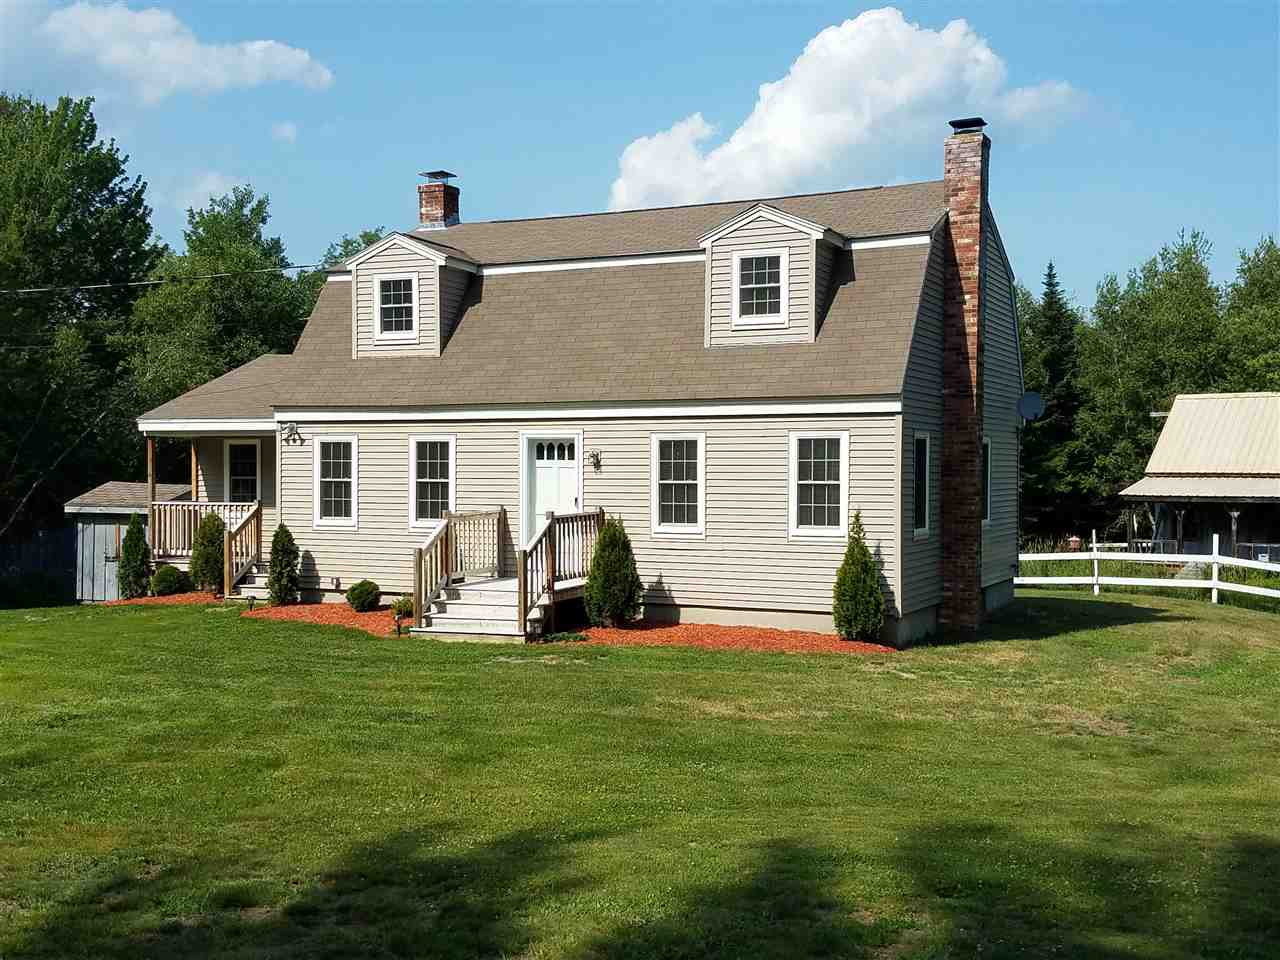 GROTON NH Homes for sale